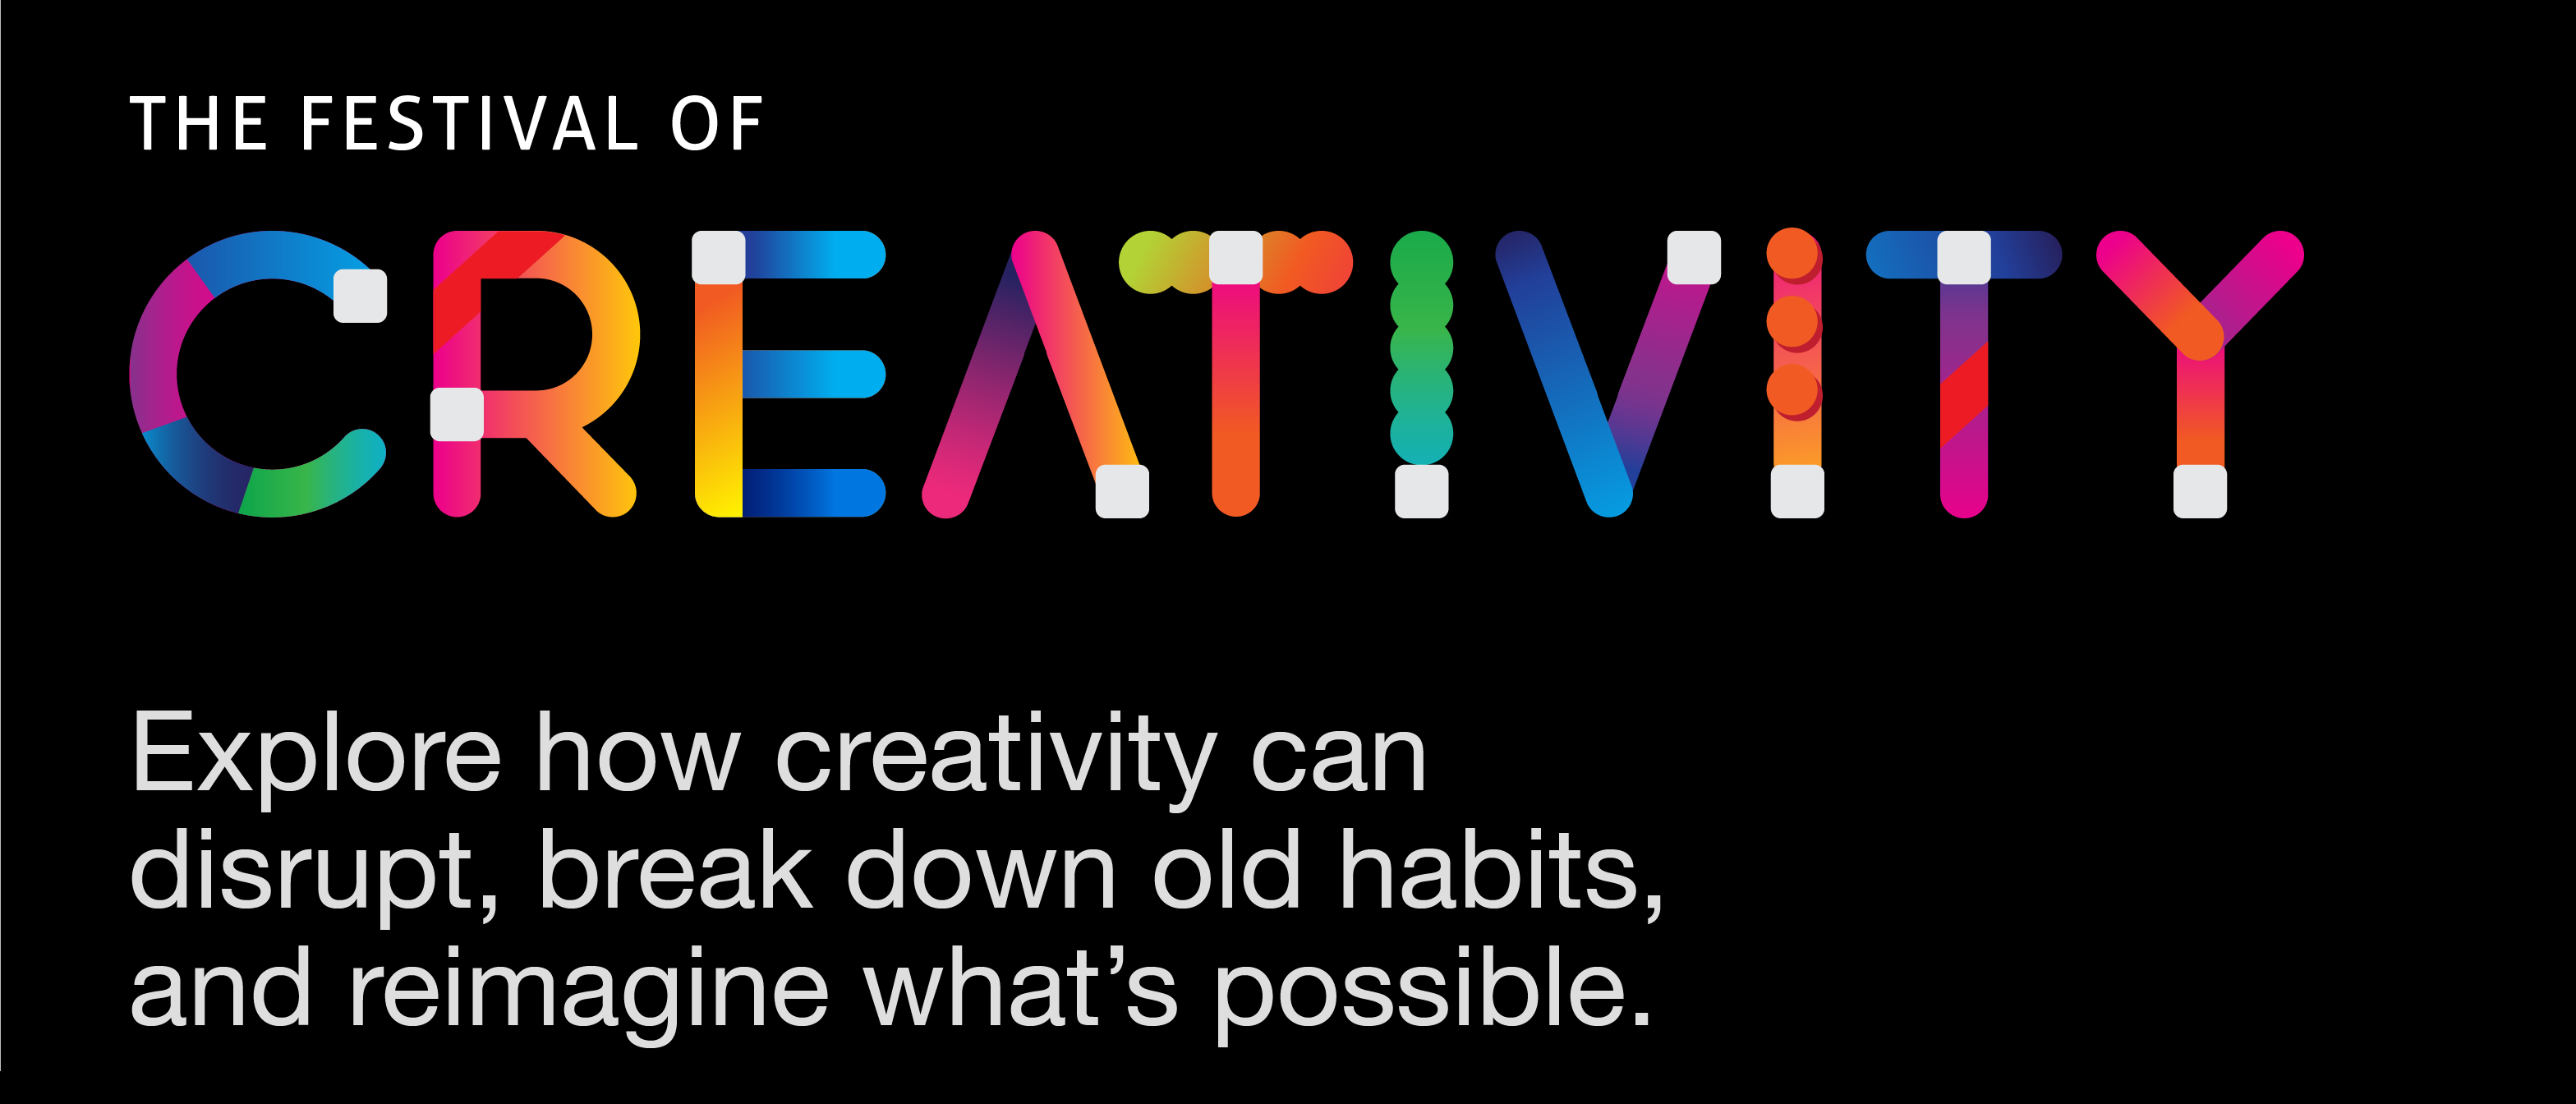 The Festival of Creativity